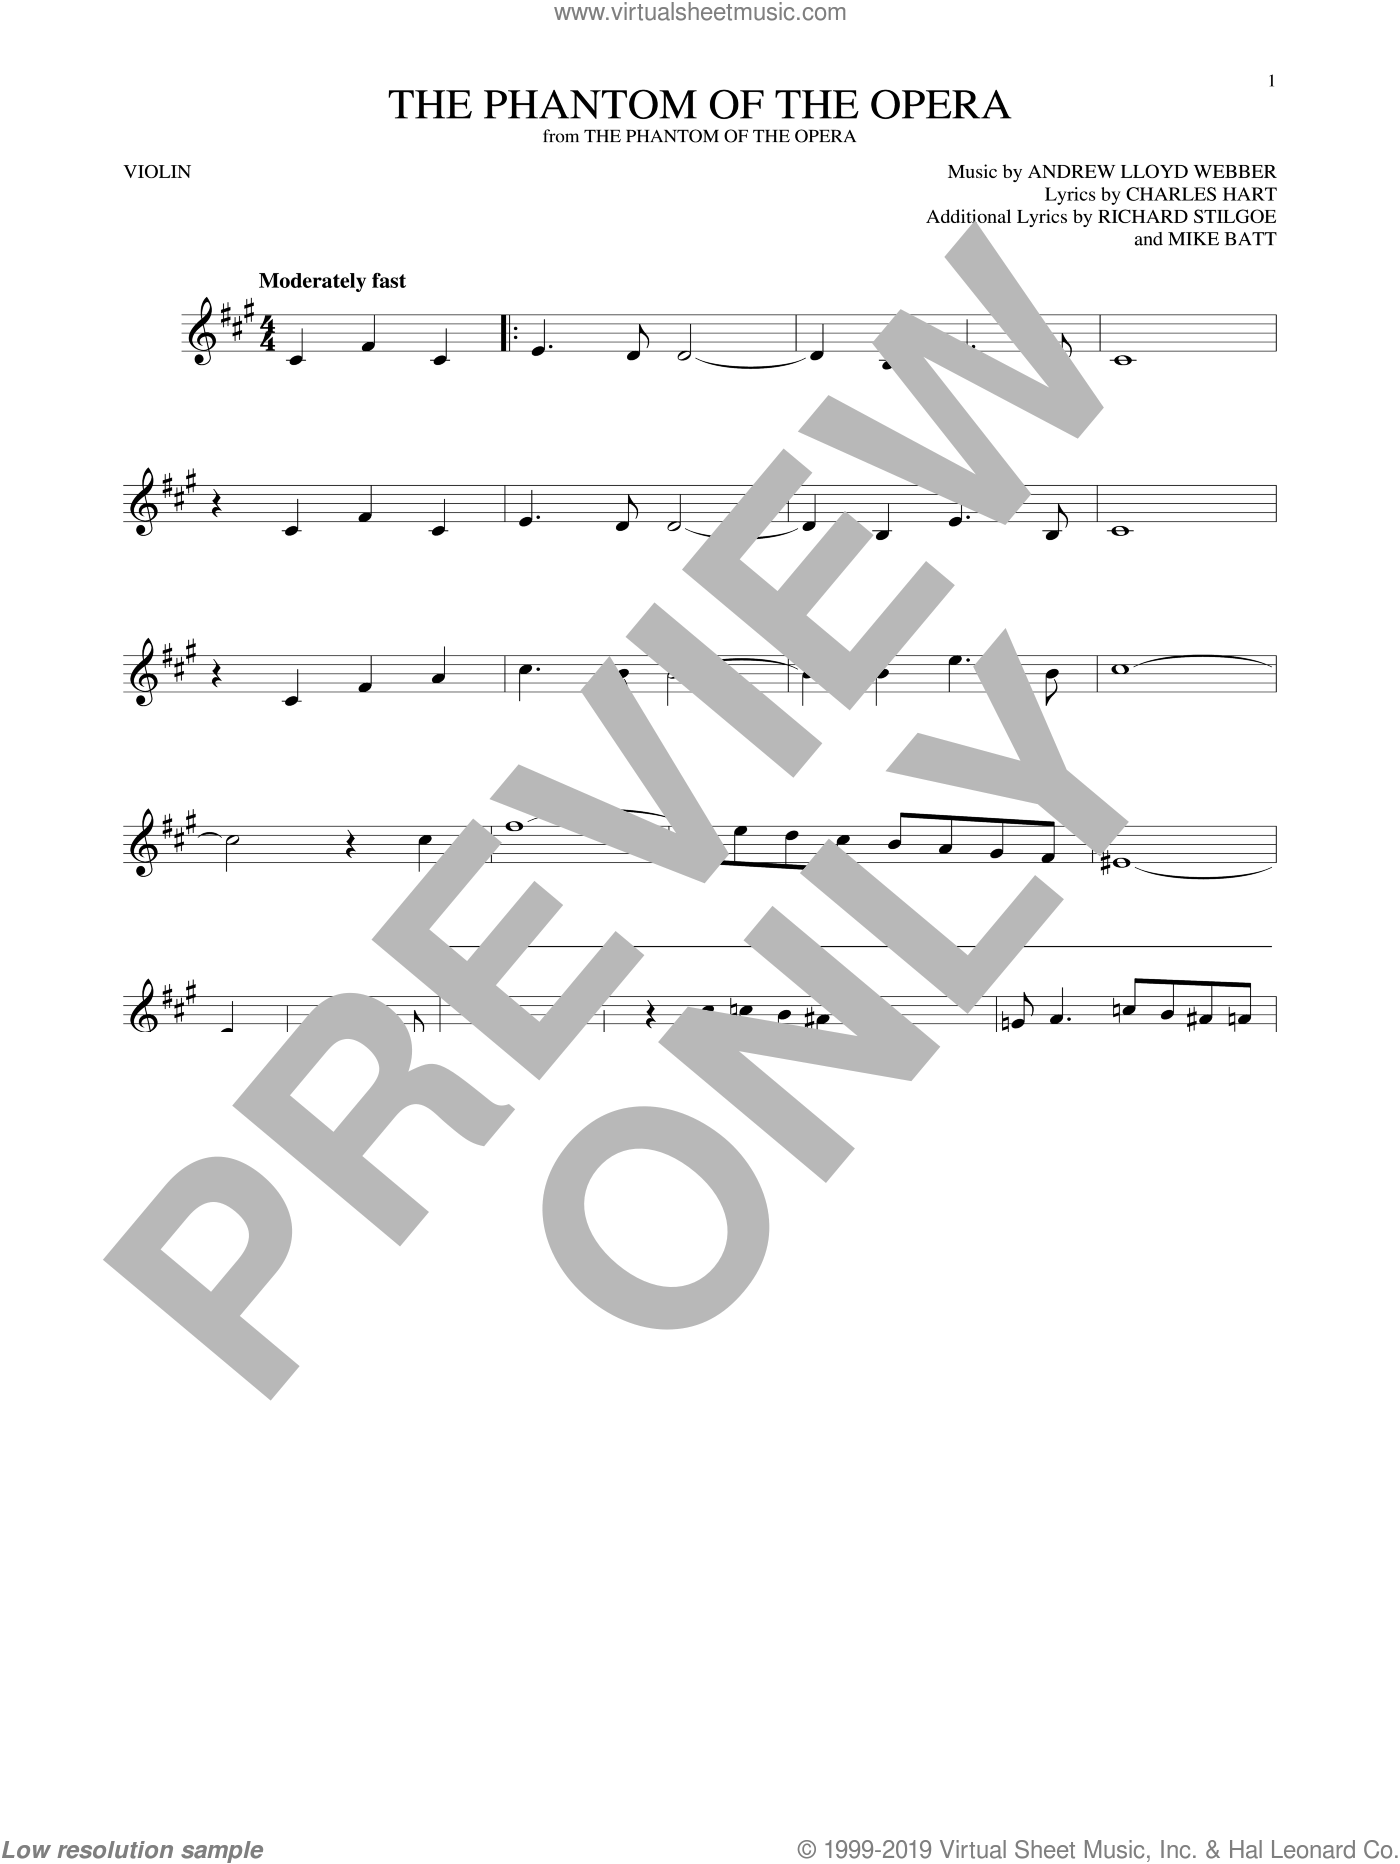 The Phantom Of The Opera sheet music for violin solo by Andrew Lloyd Webber, Charles Hart, Mike Batt and Richard Stilgoe, intermediate skill level